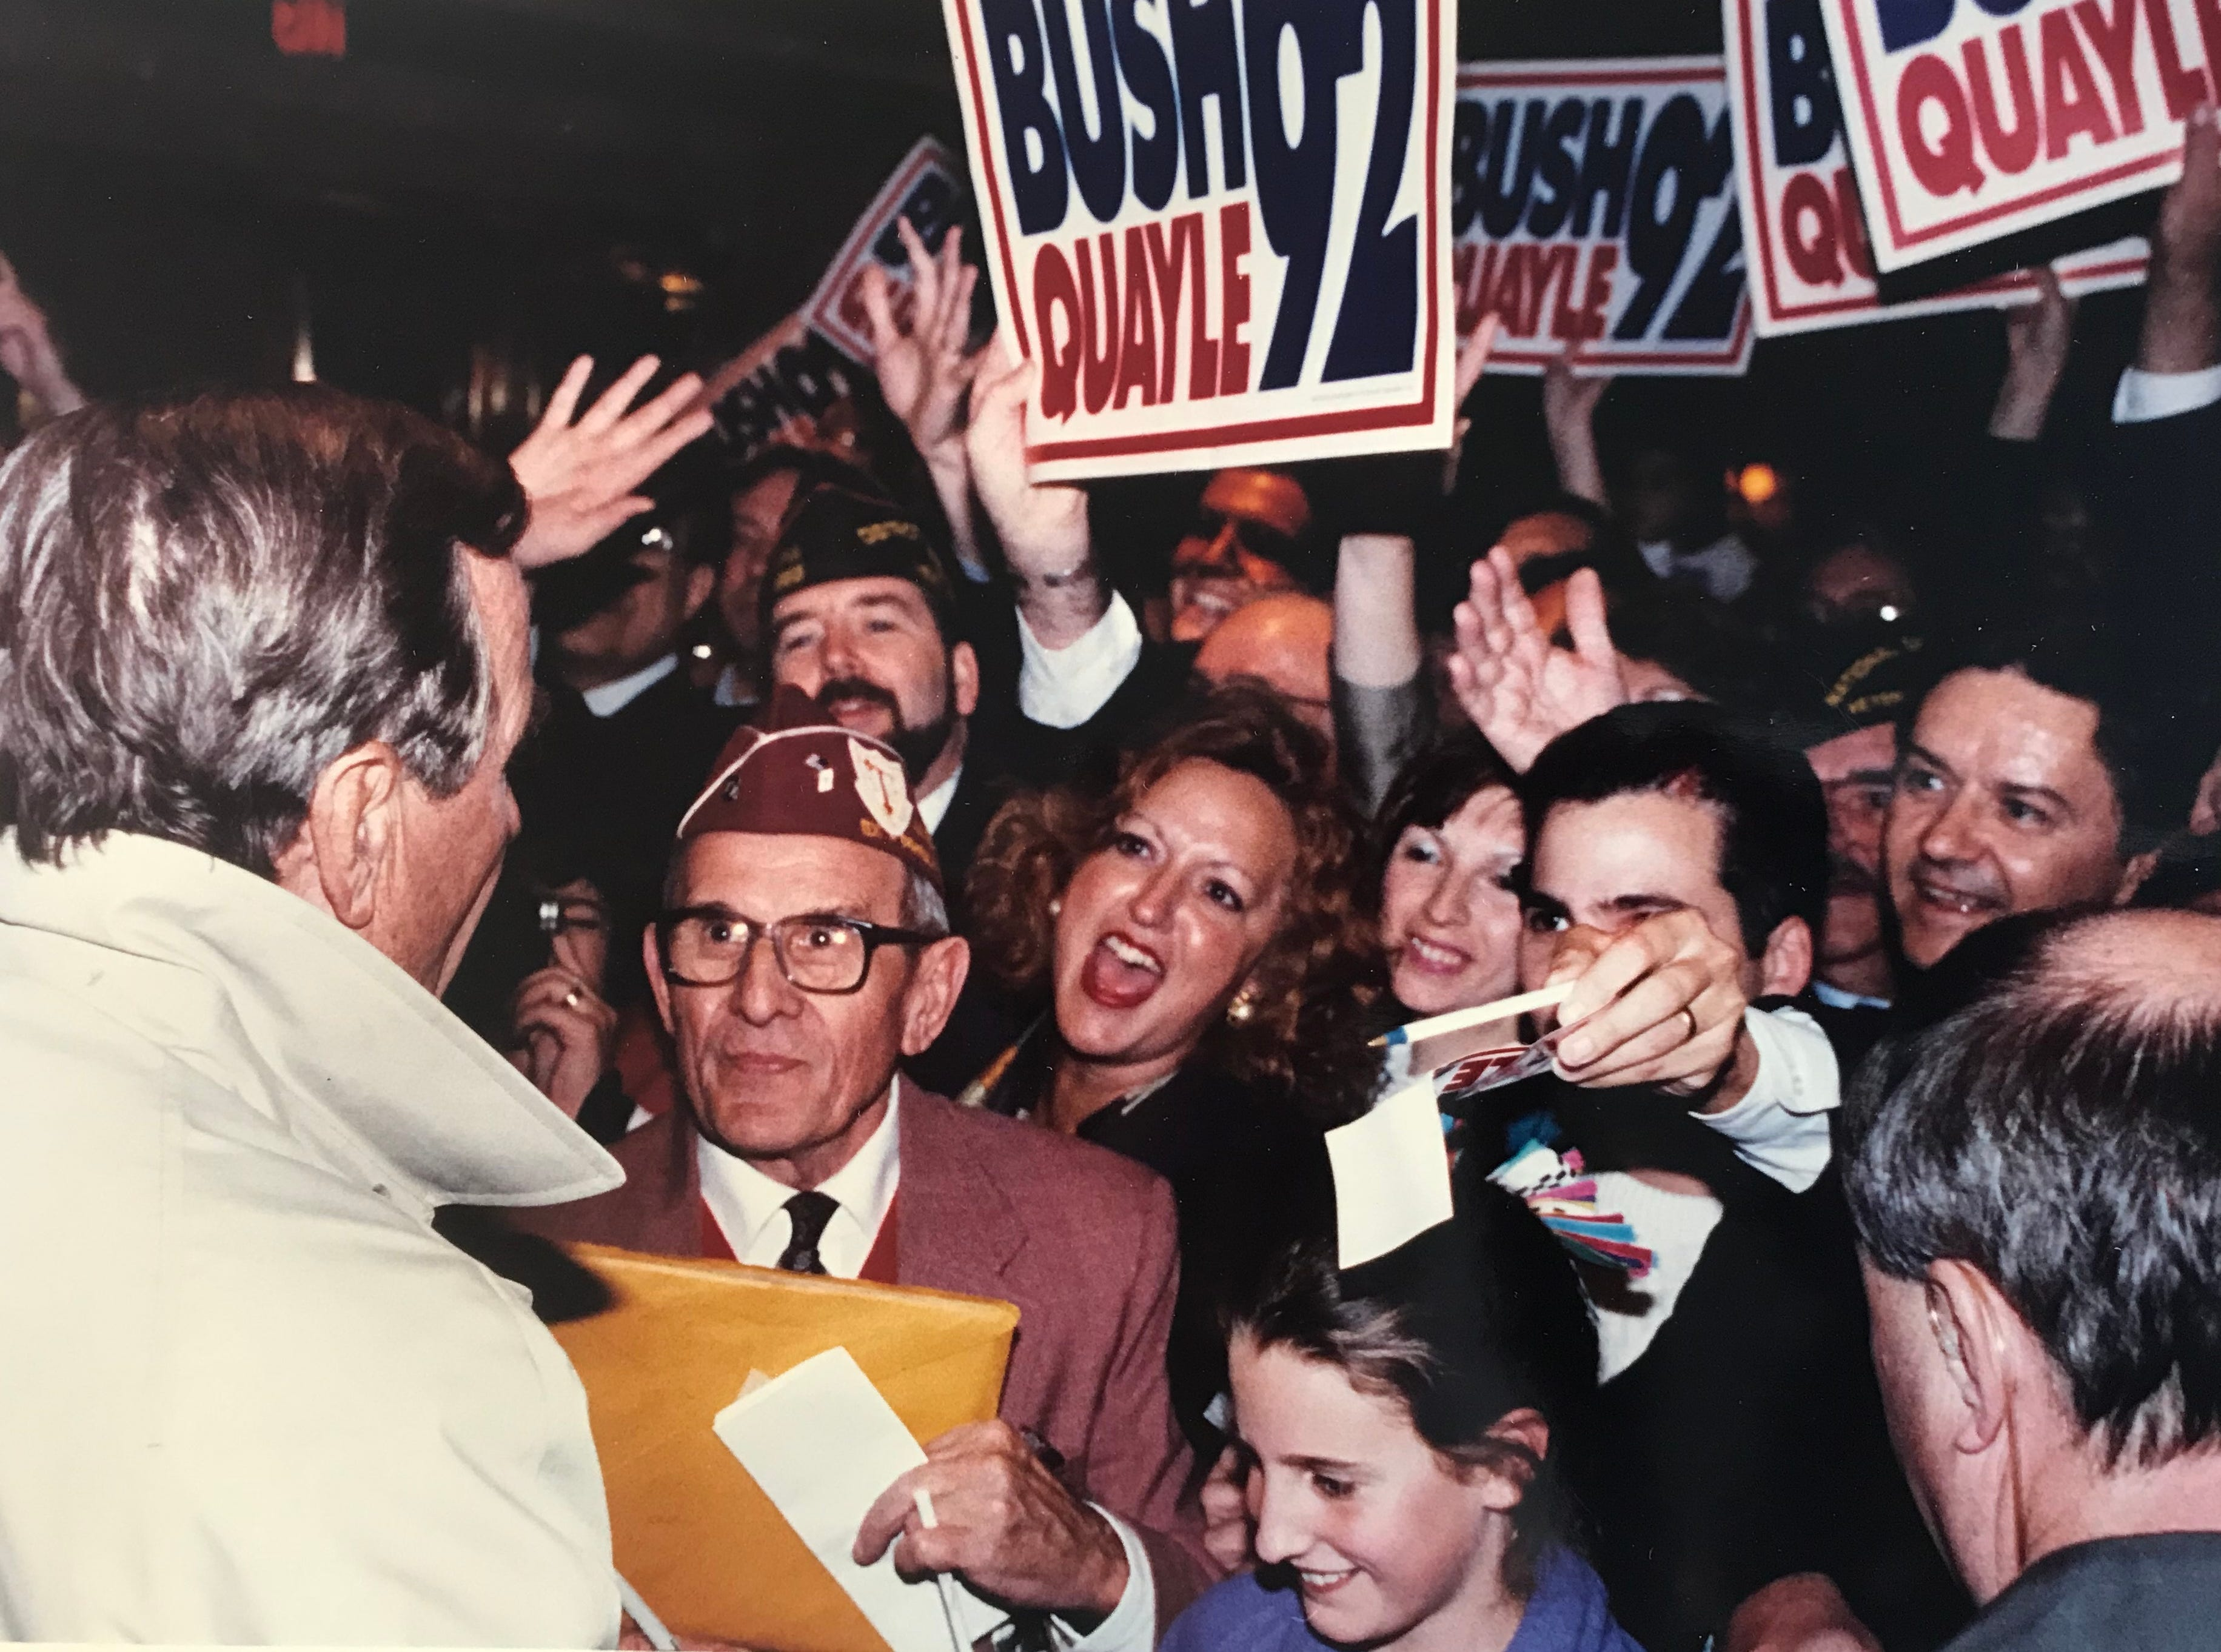 President George H.W. Bush at a Hilton hotel where he stayed before speaking in Madison, New Jersey. Nov. 1, 1992.